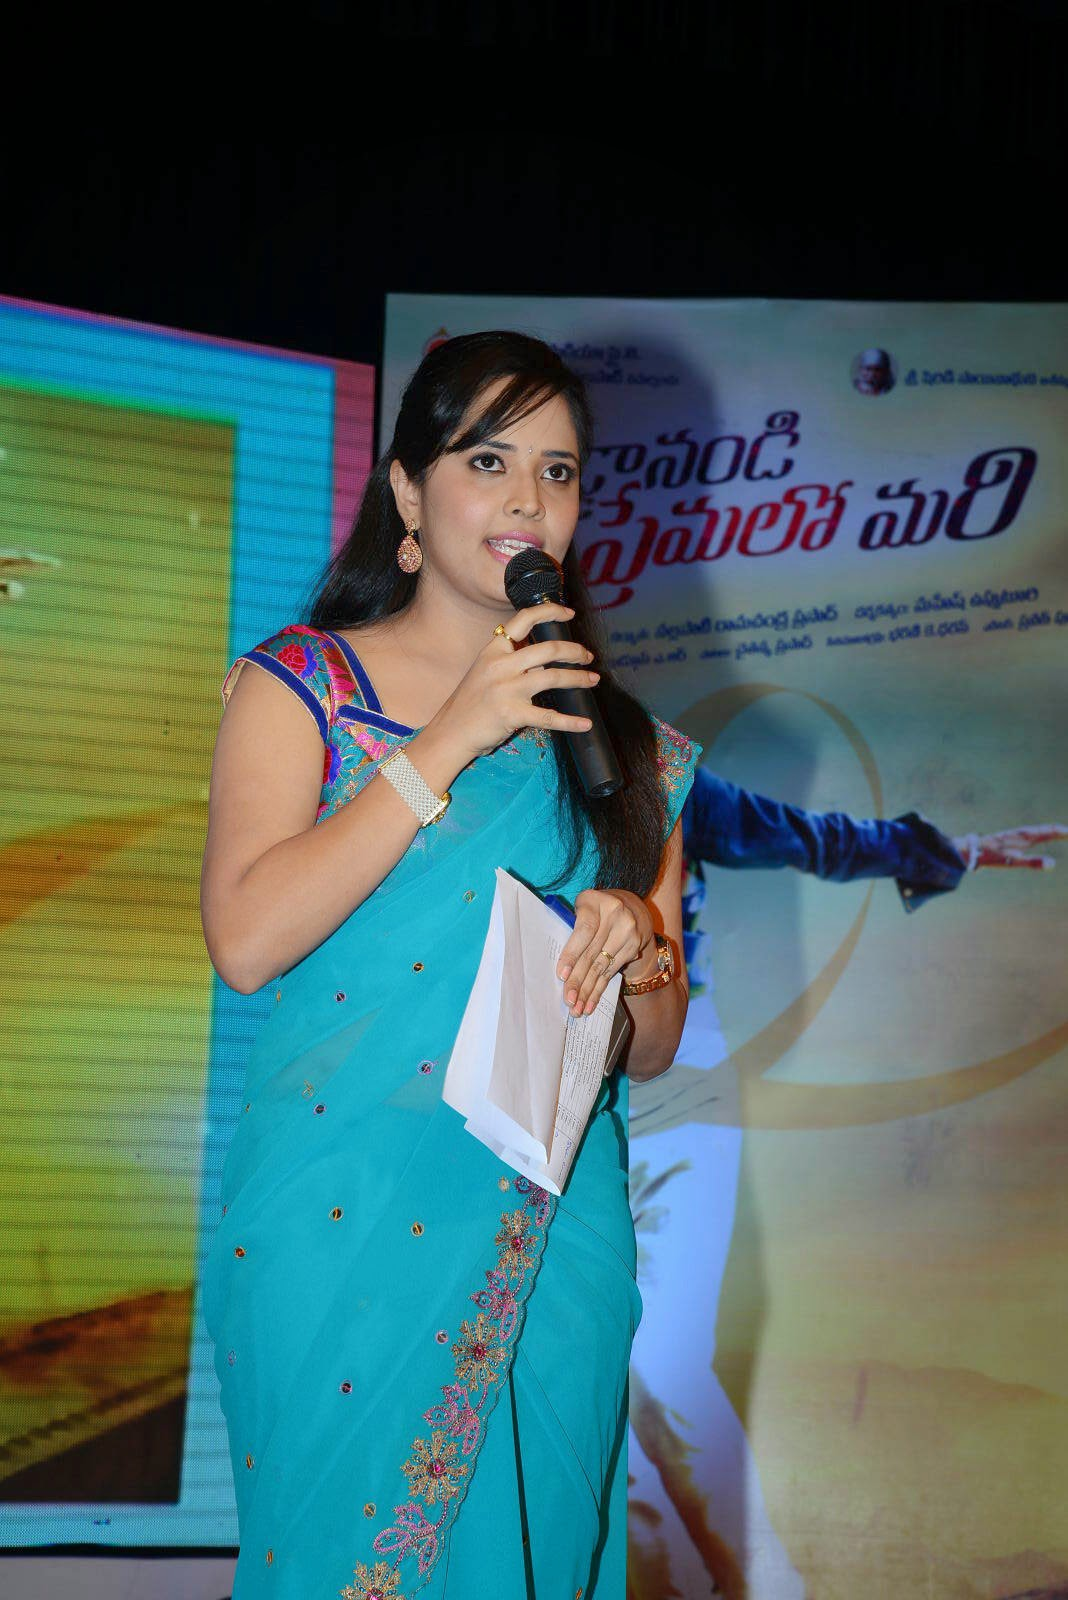 Anchor Anasuya Latest Cute Hot Transparent Blue Saree Navel Show Spicy Photos Gallery At Paddanandi Premalo Mari Movie Audio Launch